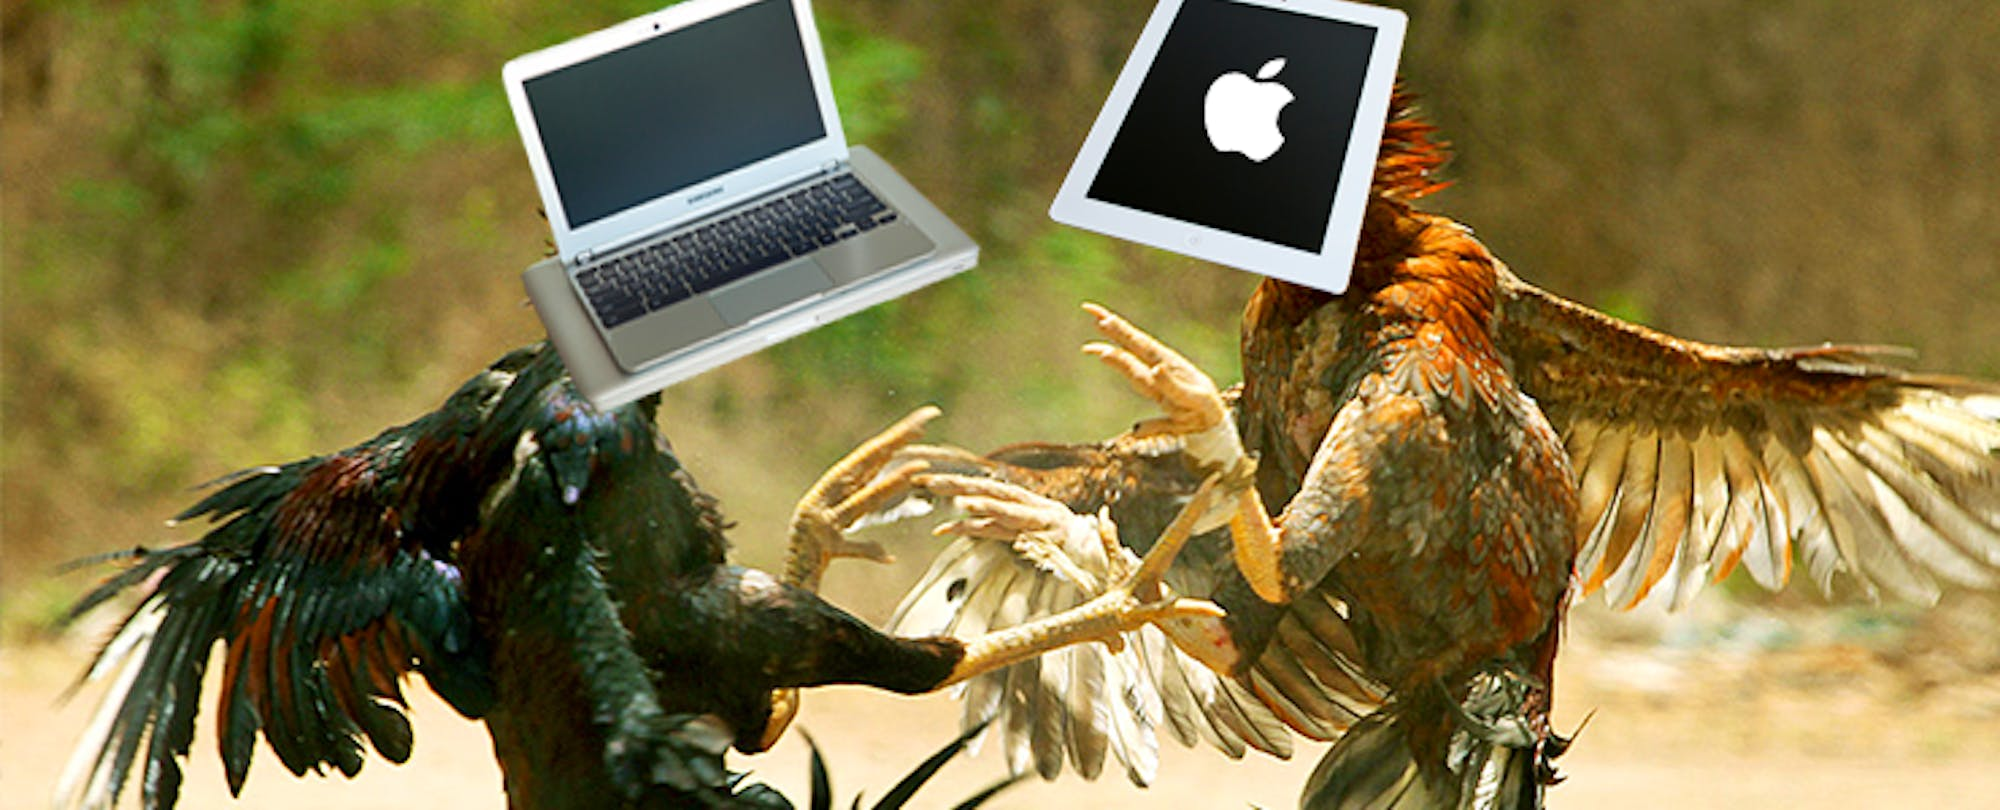 Why We Are Misunderstanding the Chromebook-iPad Debate